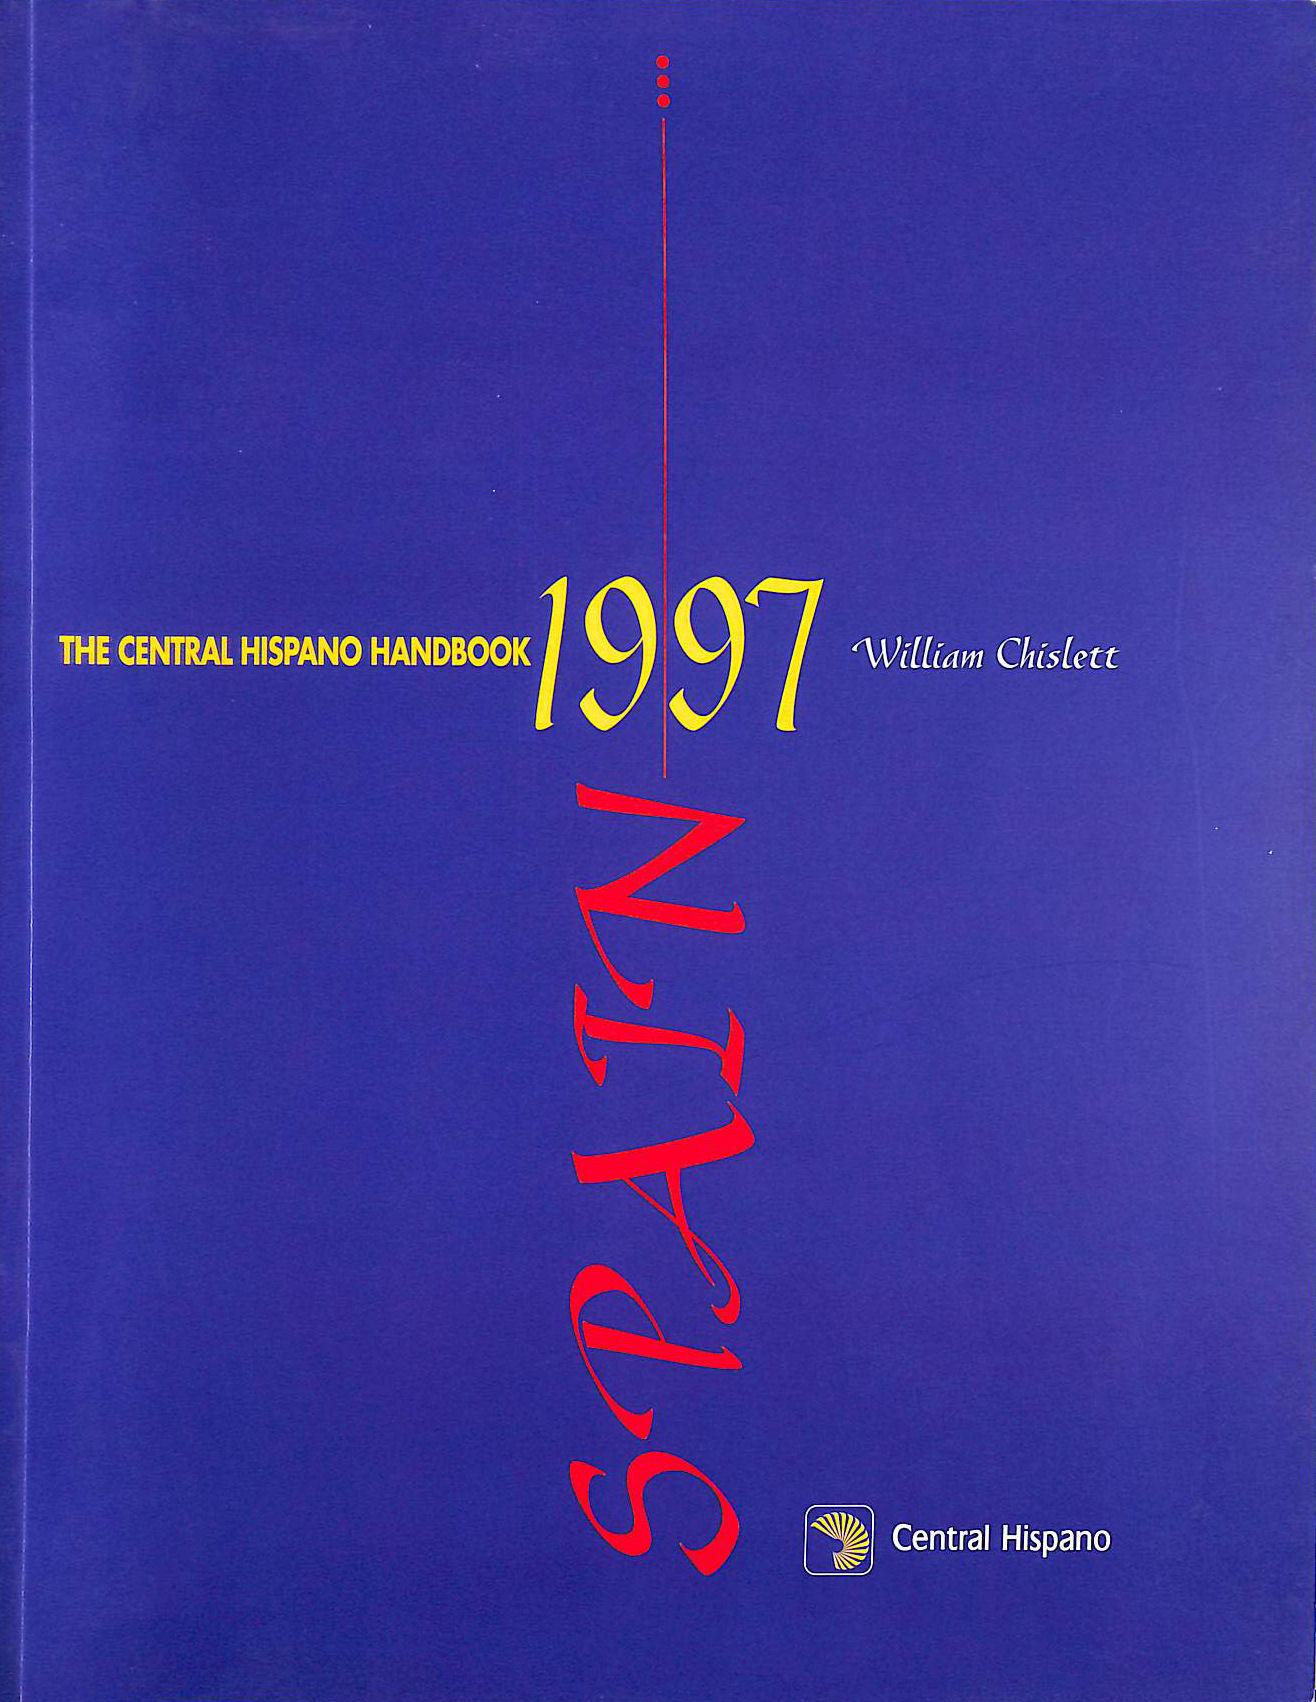 Image for The Central Hispano Handbook, Spain 1997